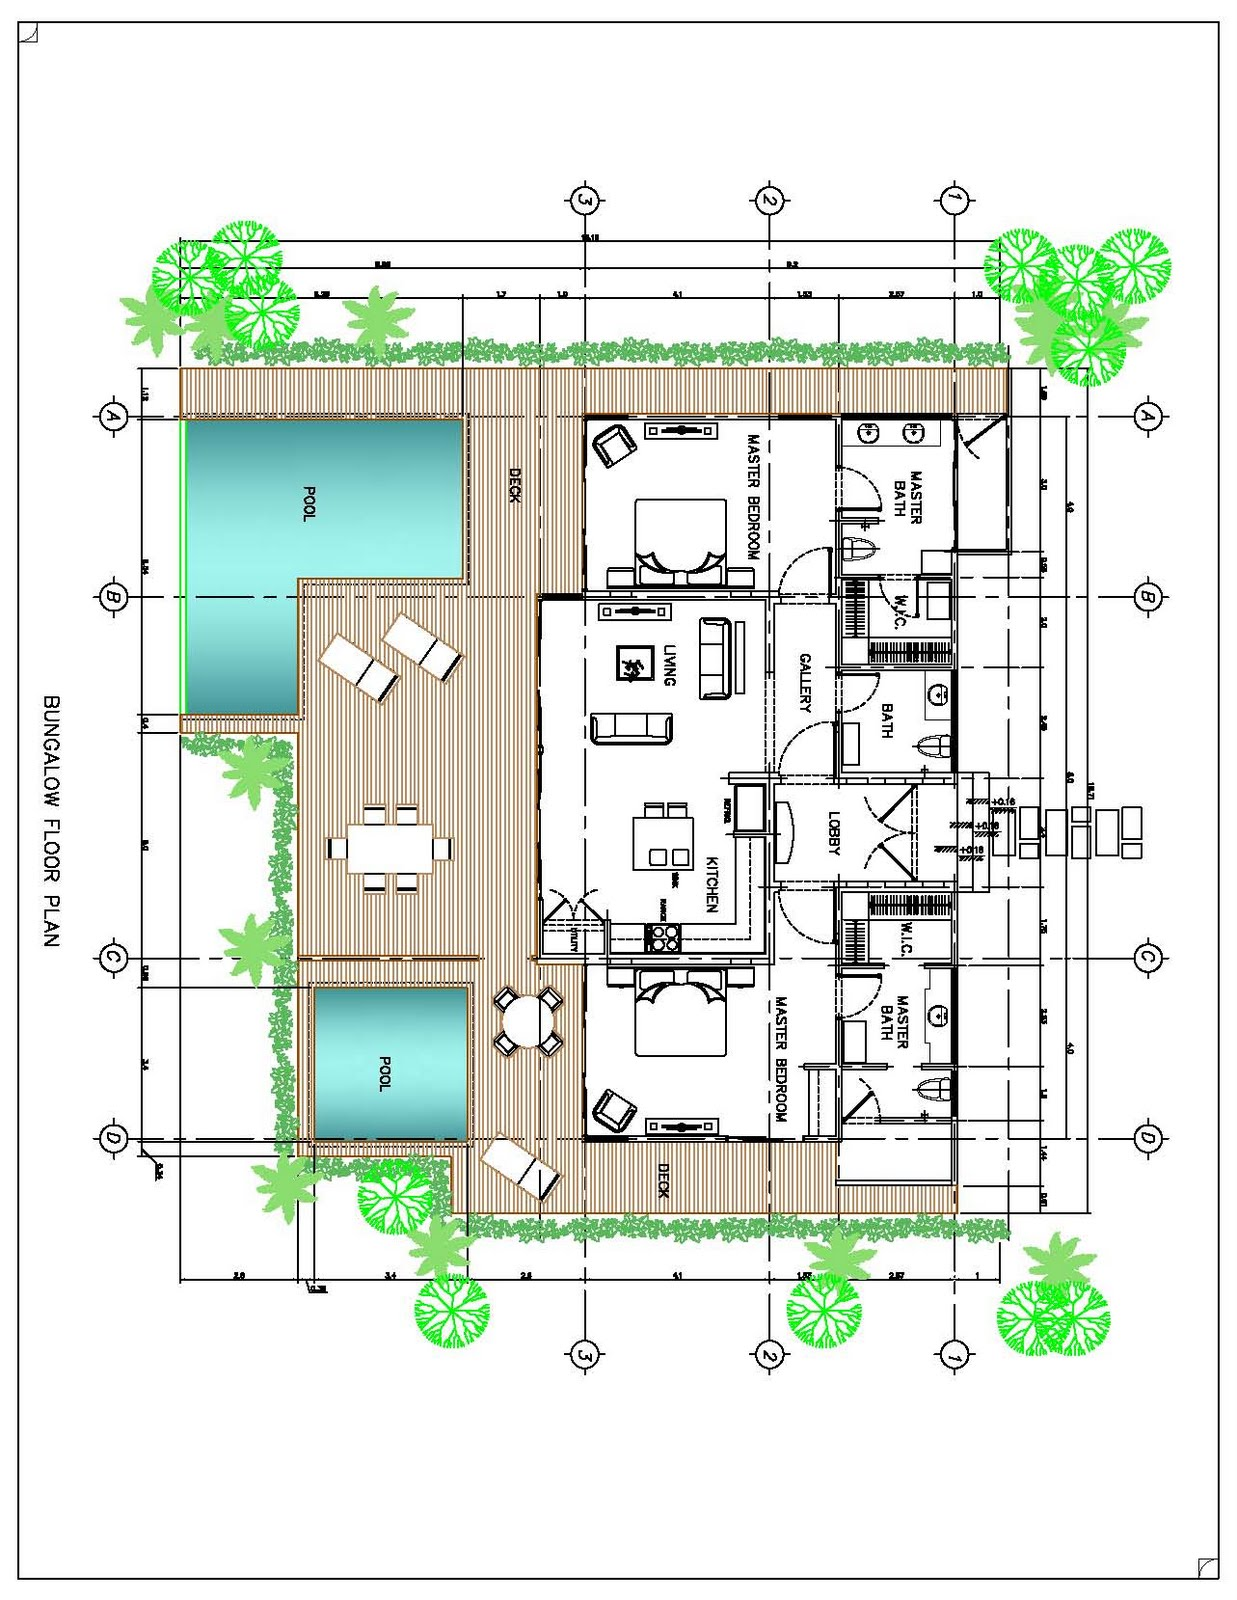 Indian bungalow designs and floor plans joy studio for Indian bungalow designs and floor plans